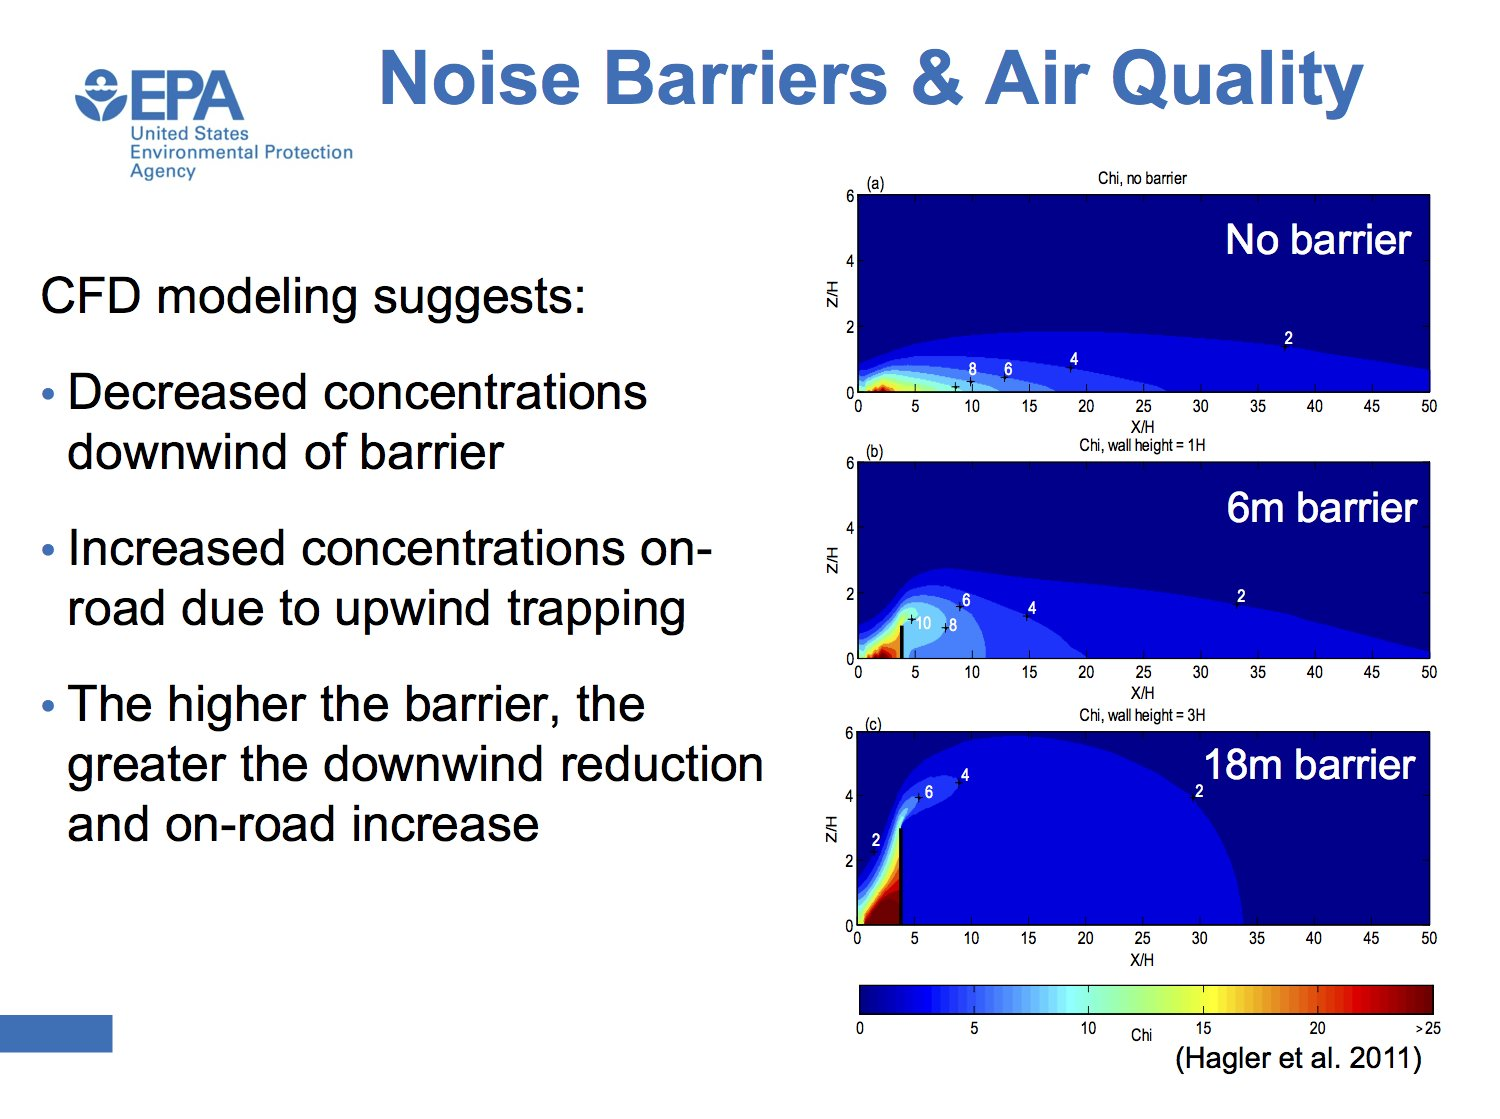 Graphs showing concentrated air pollution on roadway side of noise barriers